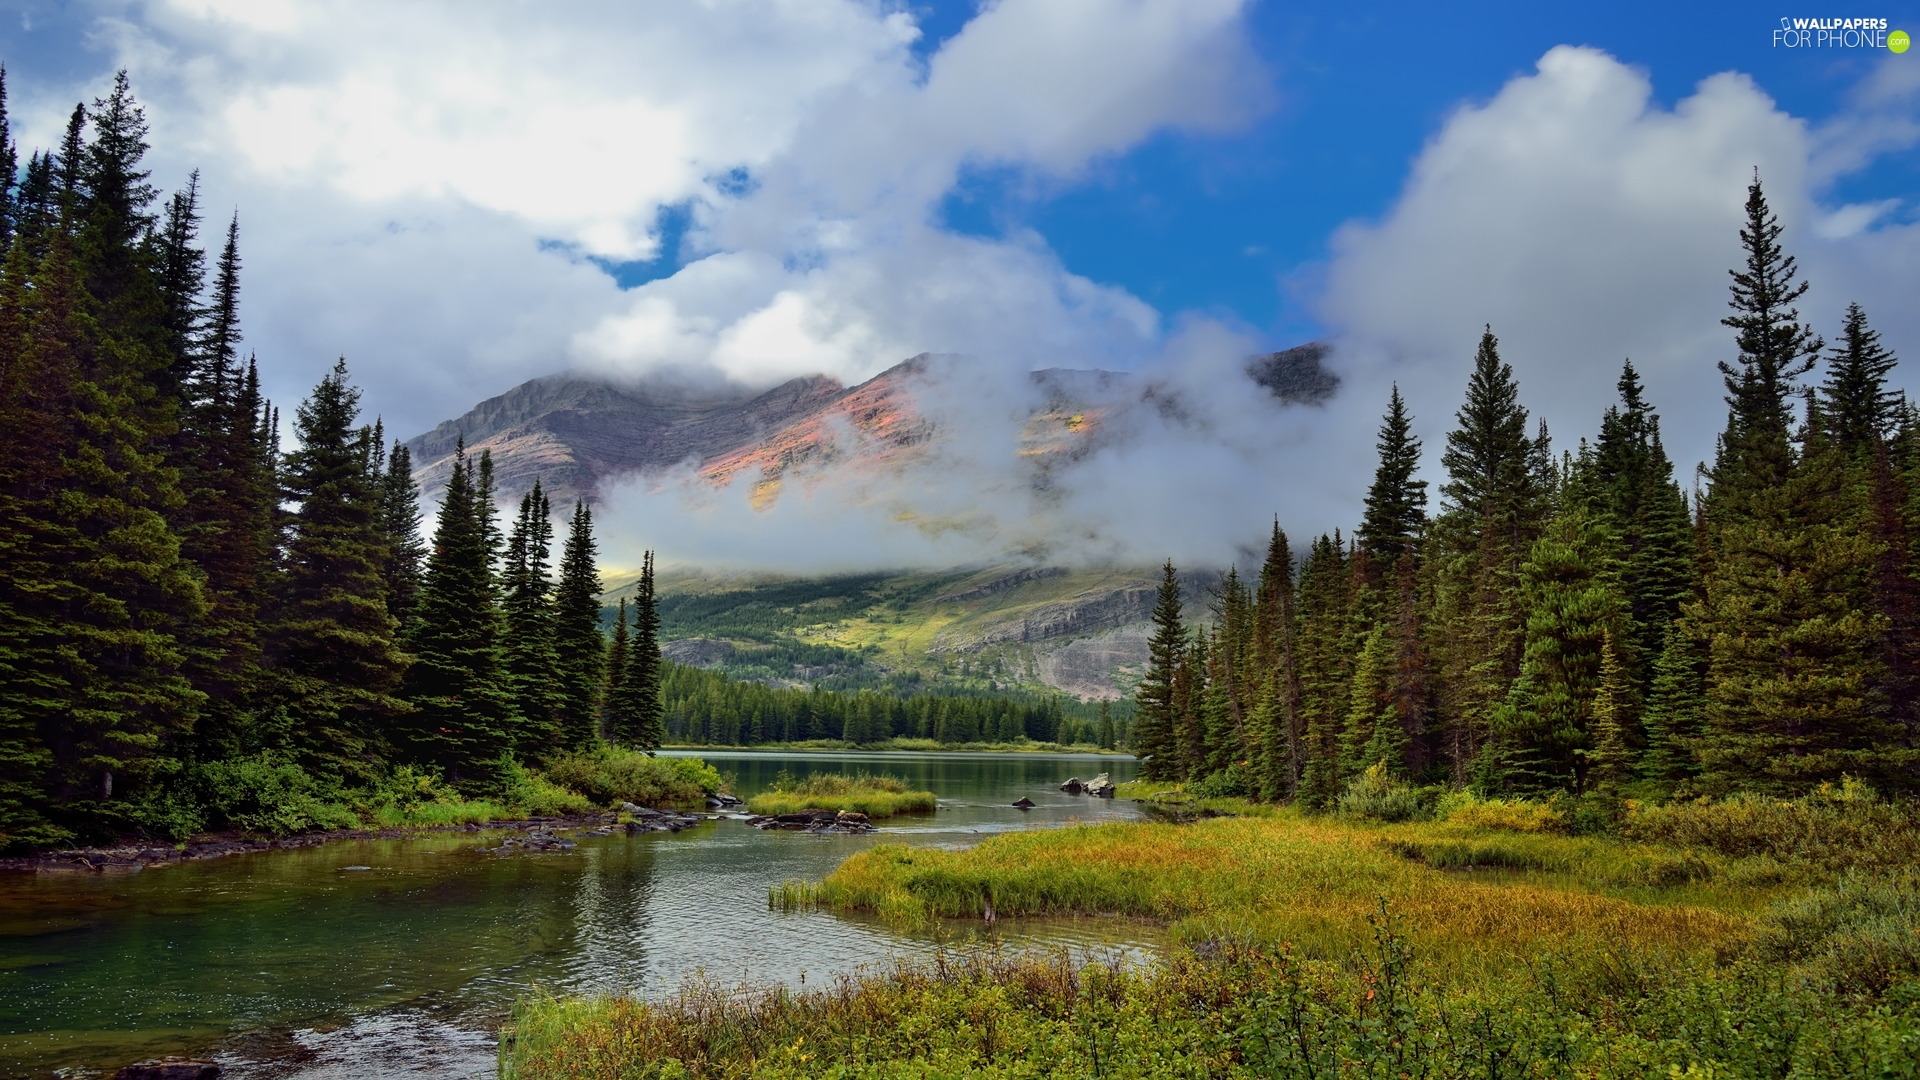 Glacier National Park, Mountains, clouds, River, viewes, Montana State, The United States, trees